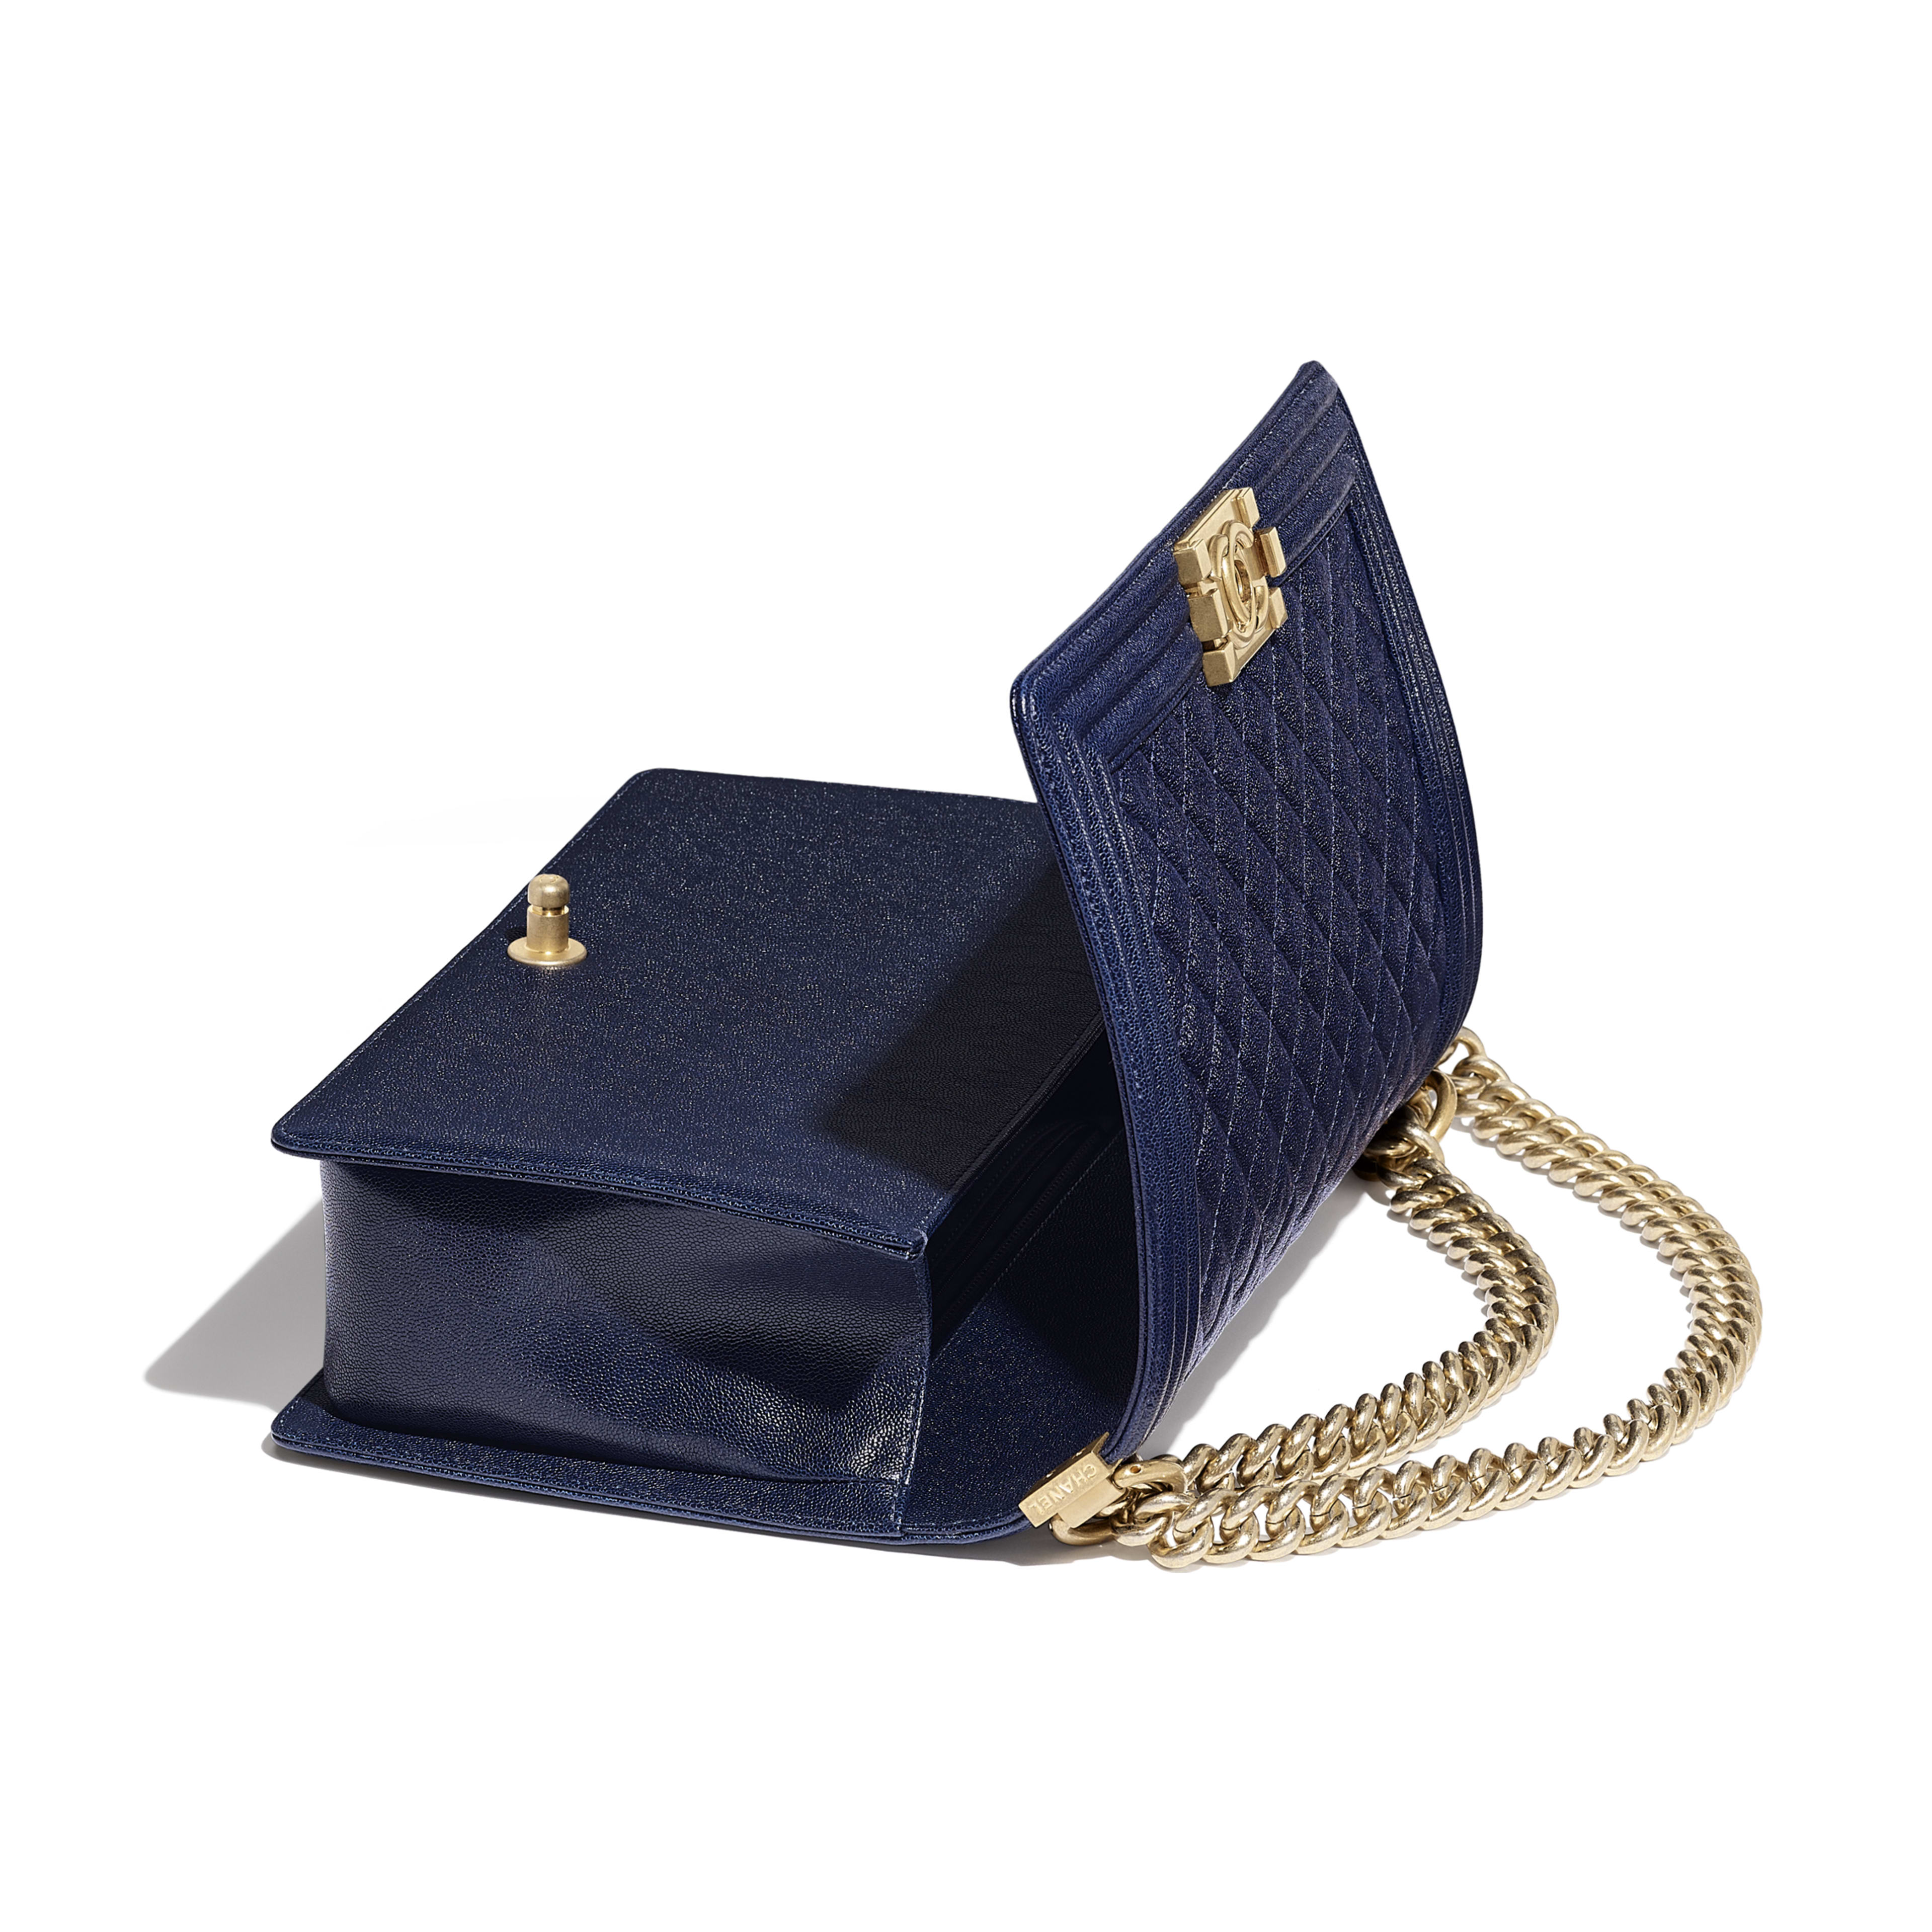 Large BOY CHANEL Handbag - Blue - Grained Calfskin & Gold-Tone Metal - Other view - see full sized version